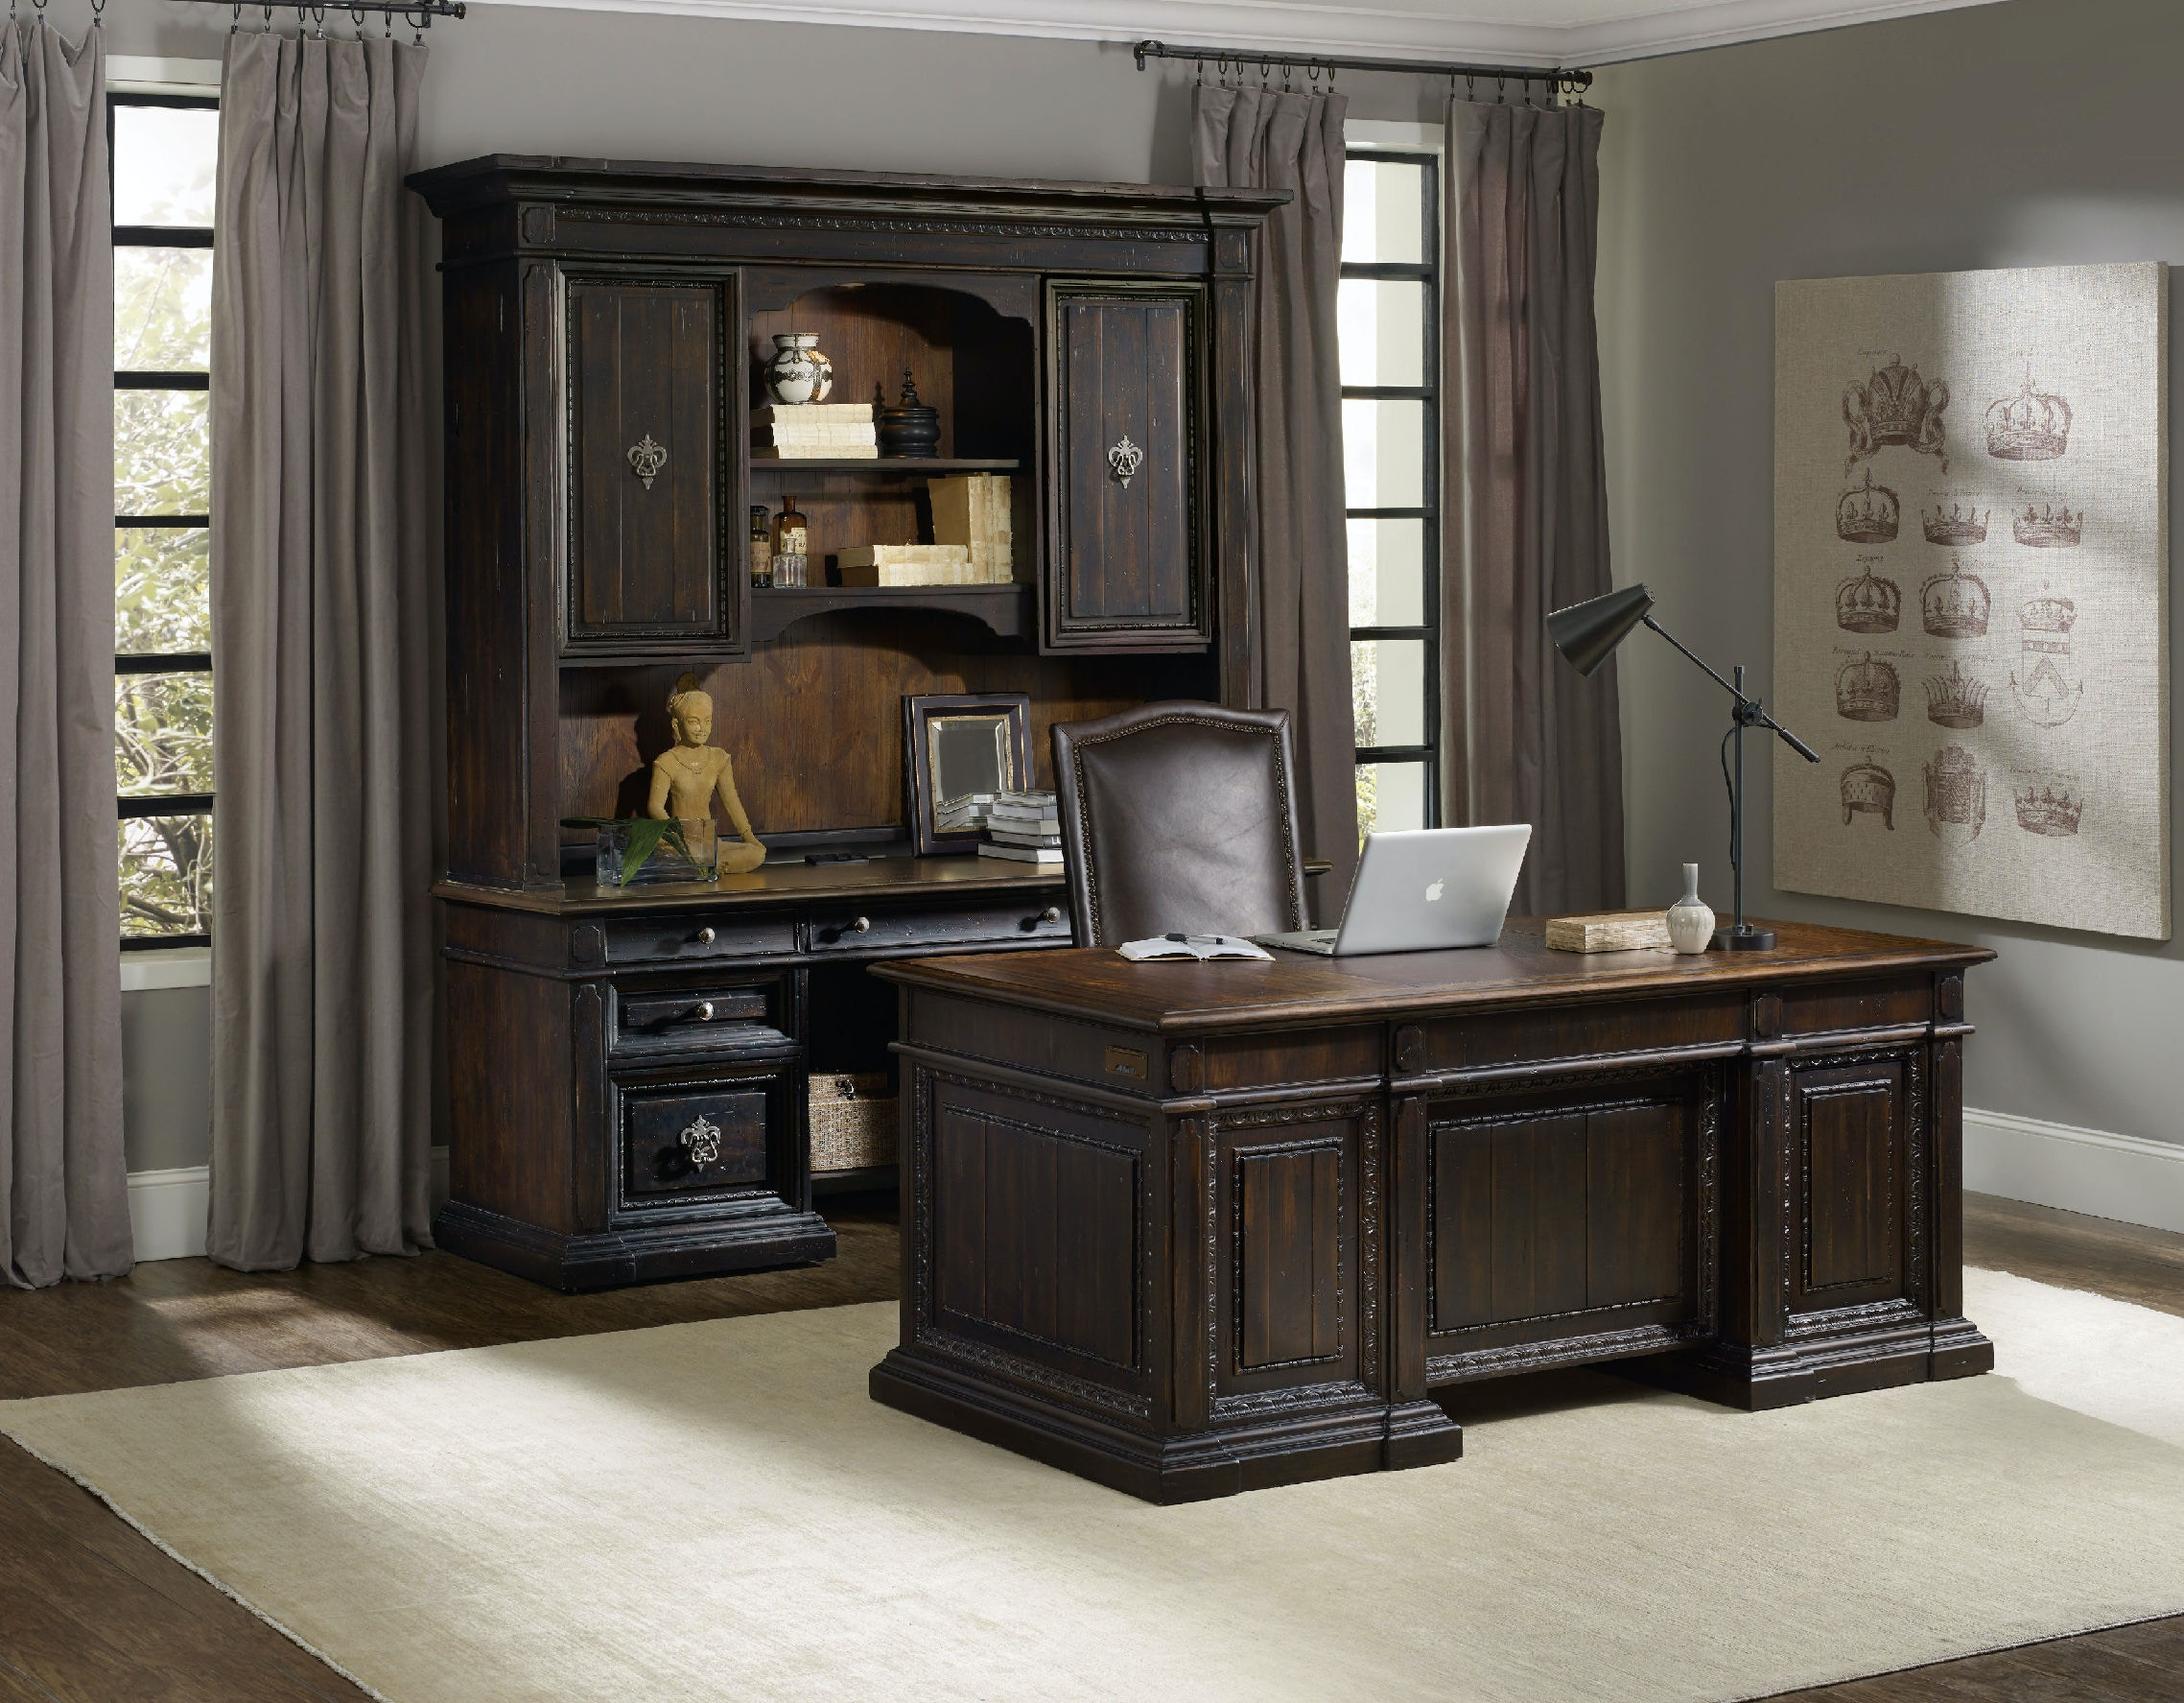 Superieur Hooker Furniture Treviso Executive Desk 5374 10563